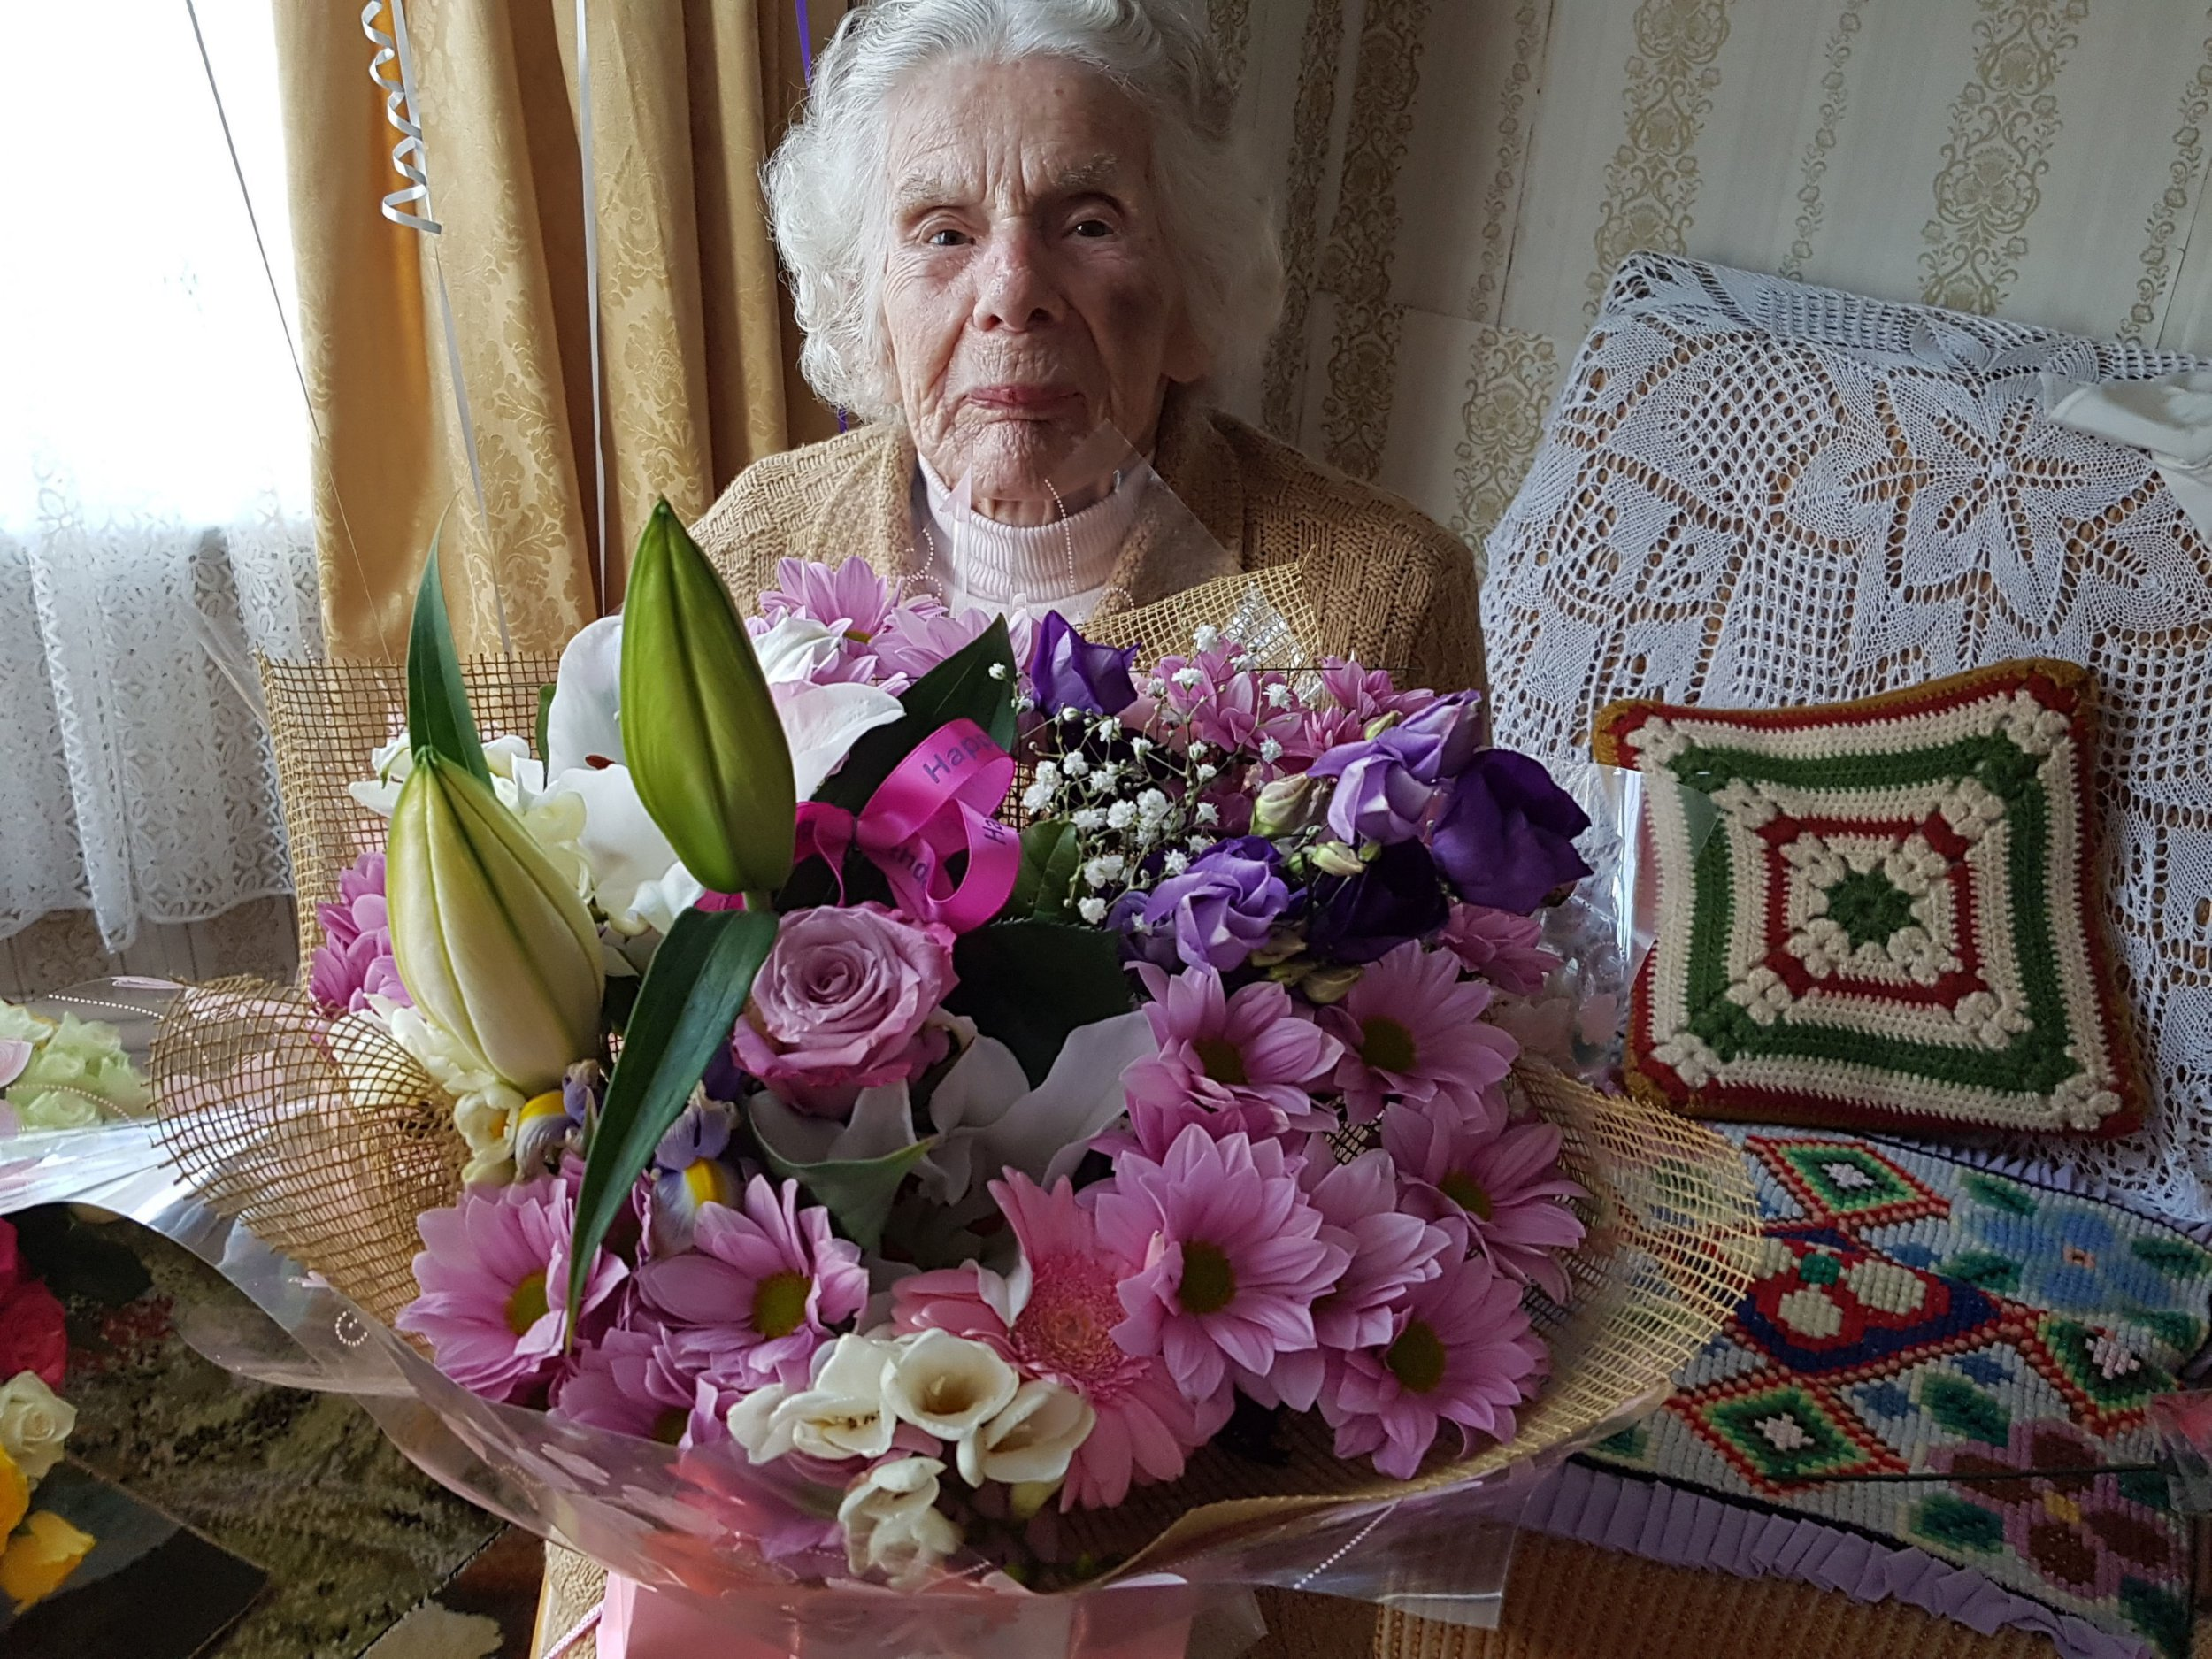 Undated handout photo issued by Stacia Fitzsimmons of 100-year-old robbery victim Zofija Kaczan, who had her neck broken in an attack on May 28 and has now died. PRESS ASSOCIATION Photo. Issue date: Wednesday June 6, 2018. See PA story POLICE Derby. Photo credit should read: Stacia Fitzsimmons/PA Wire